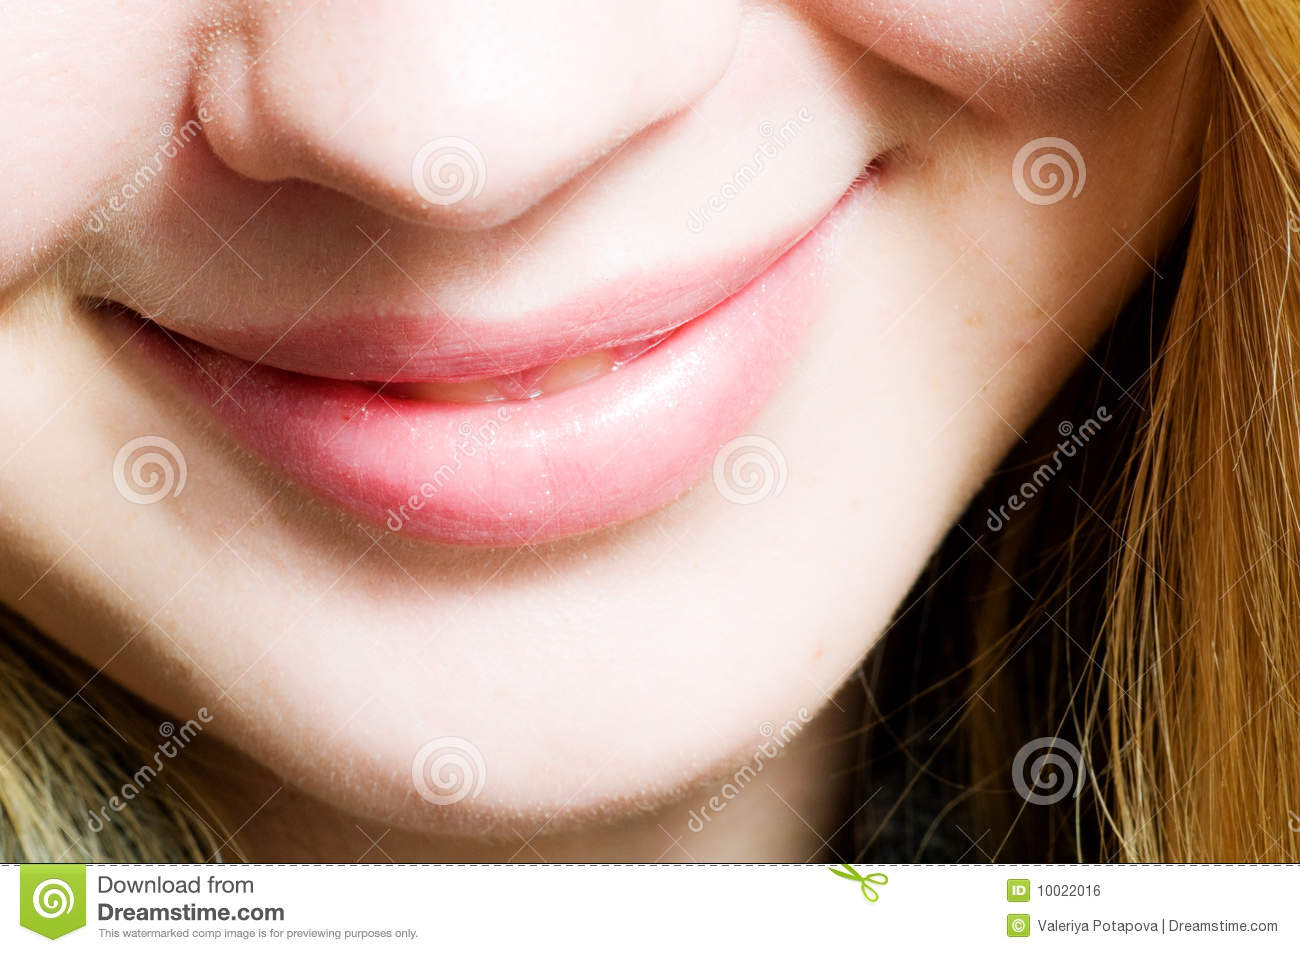 Smile. Close-up Mouth Royalty Free Stock Image - Image: 10022016